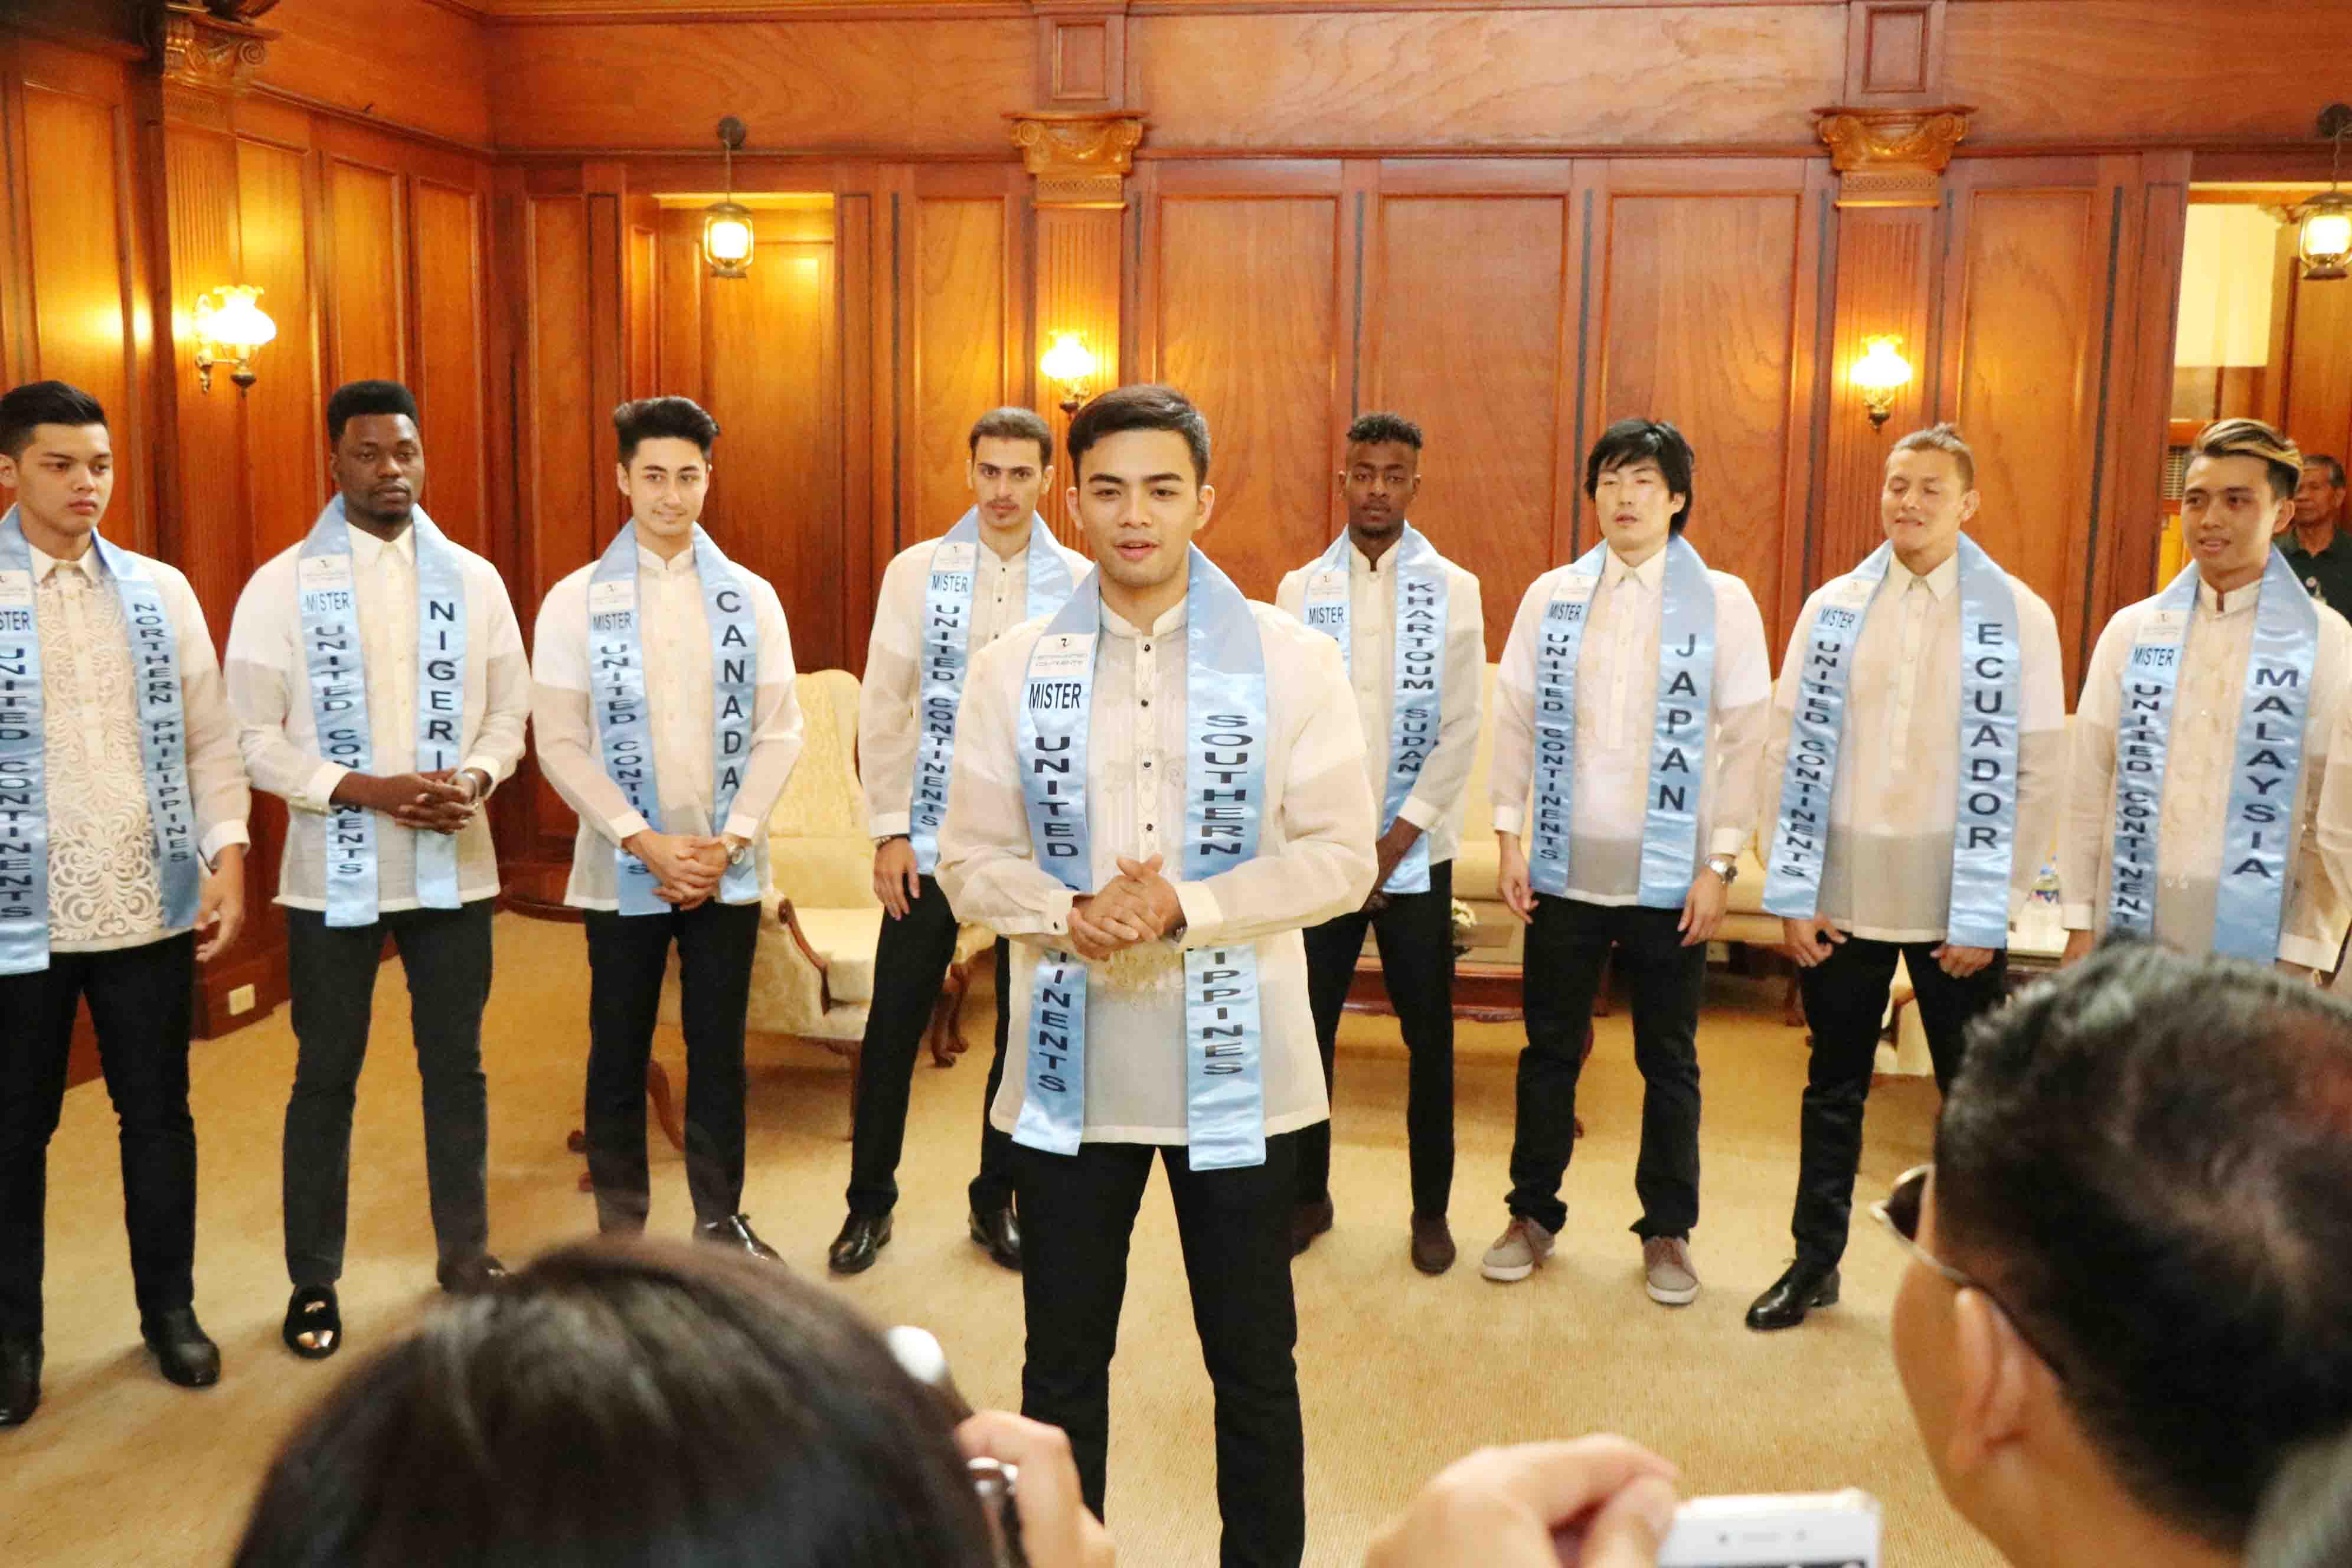 Mr. United Continents visit at the Capitol_1